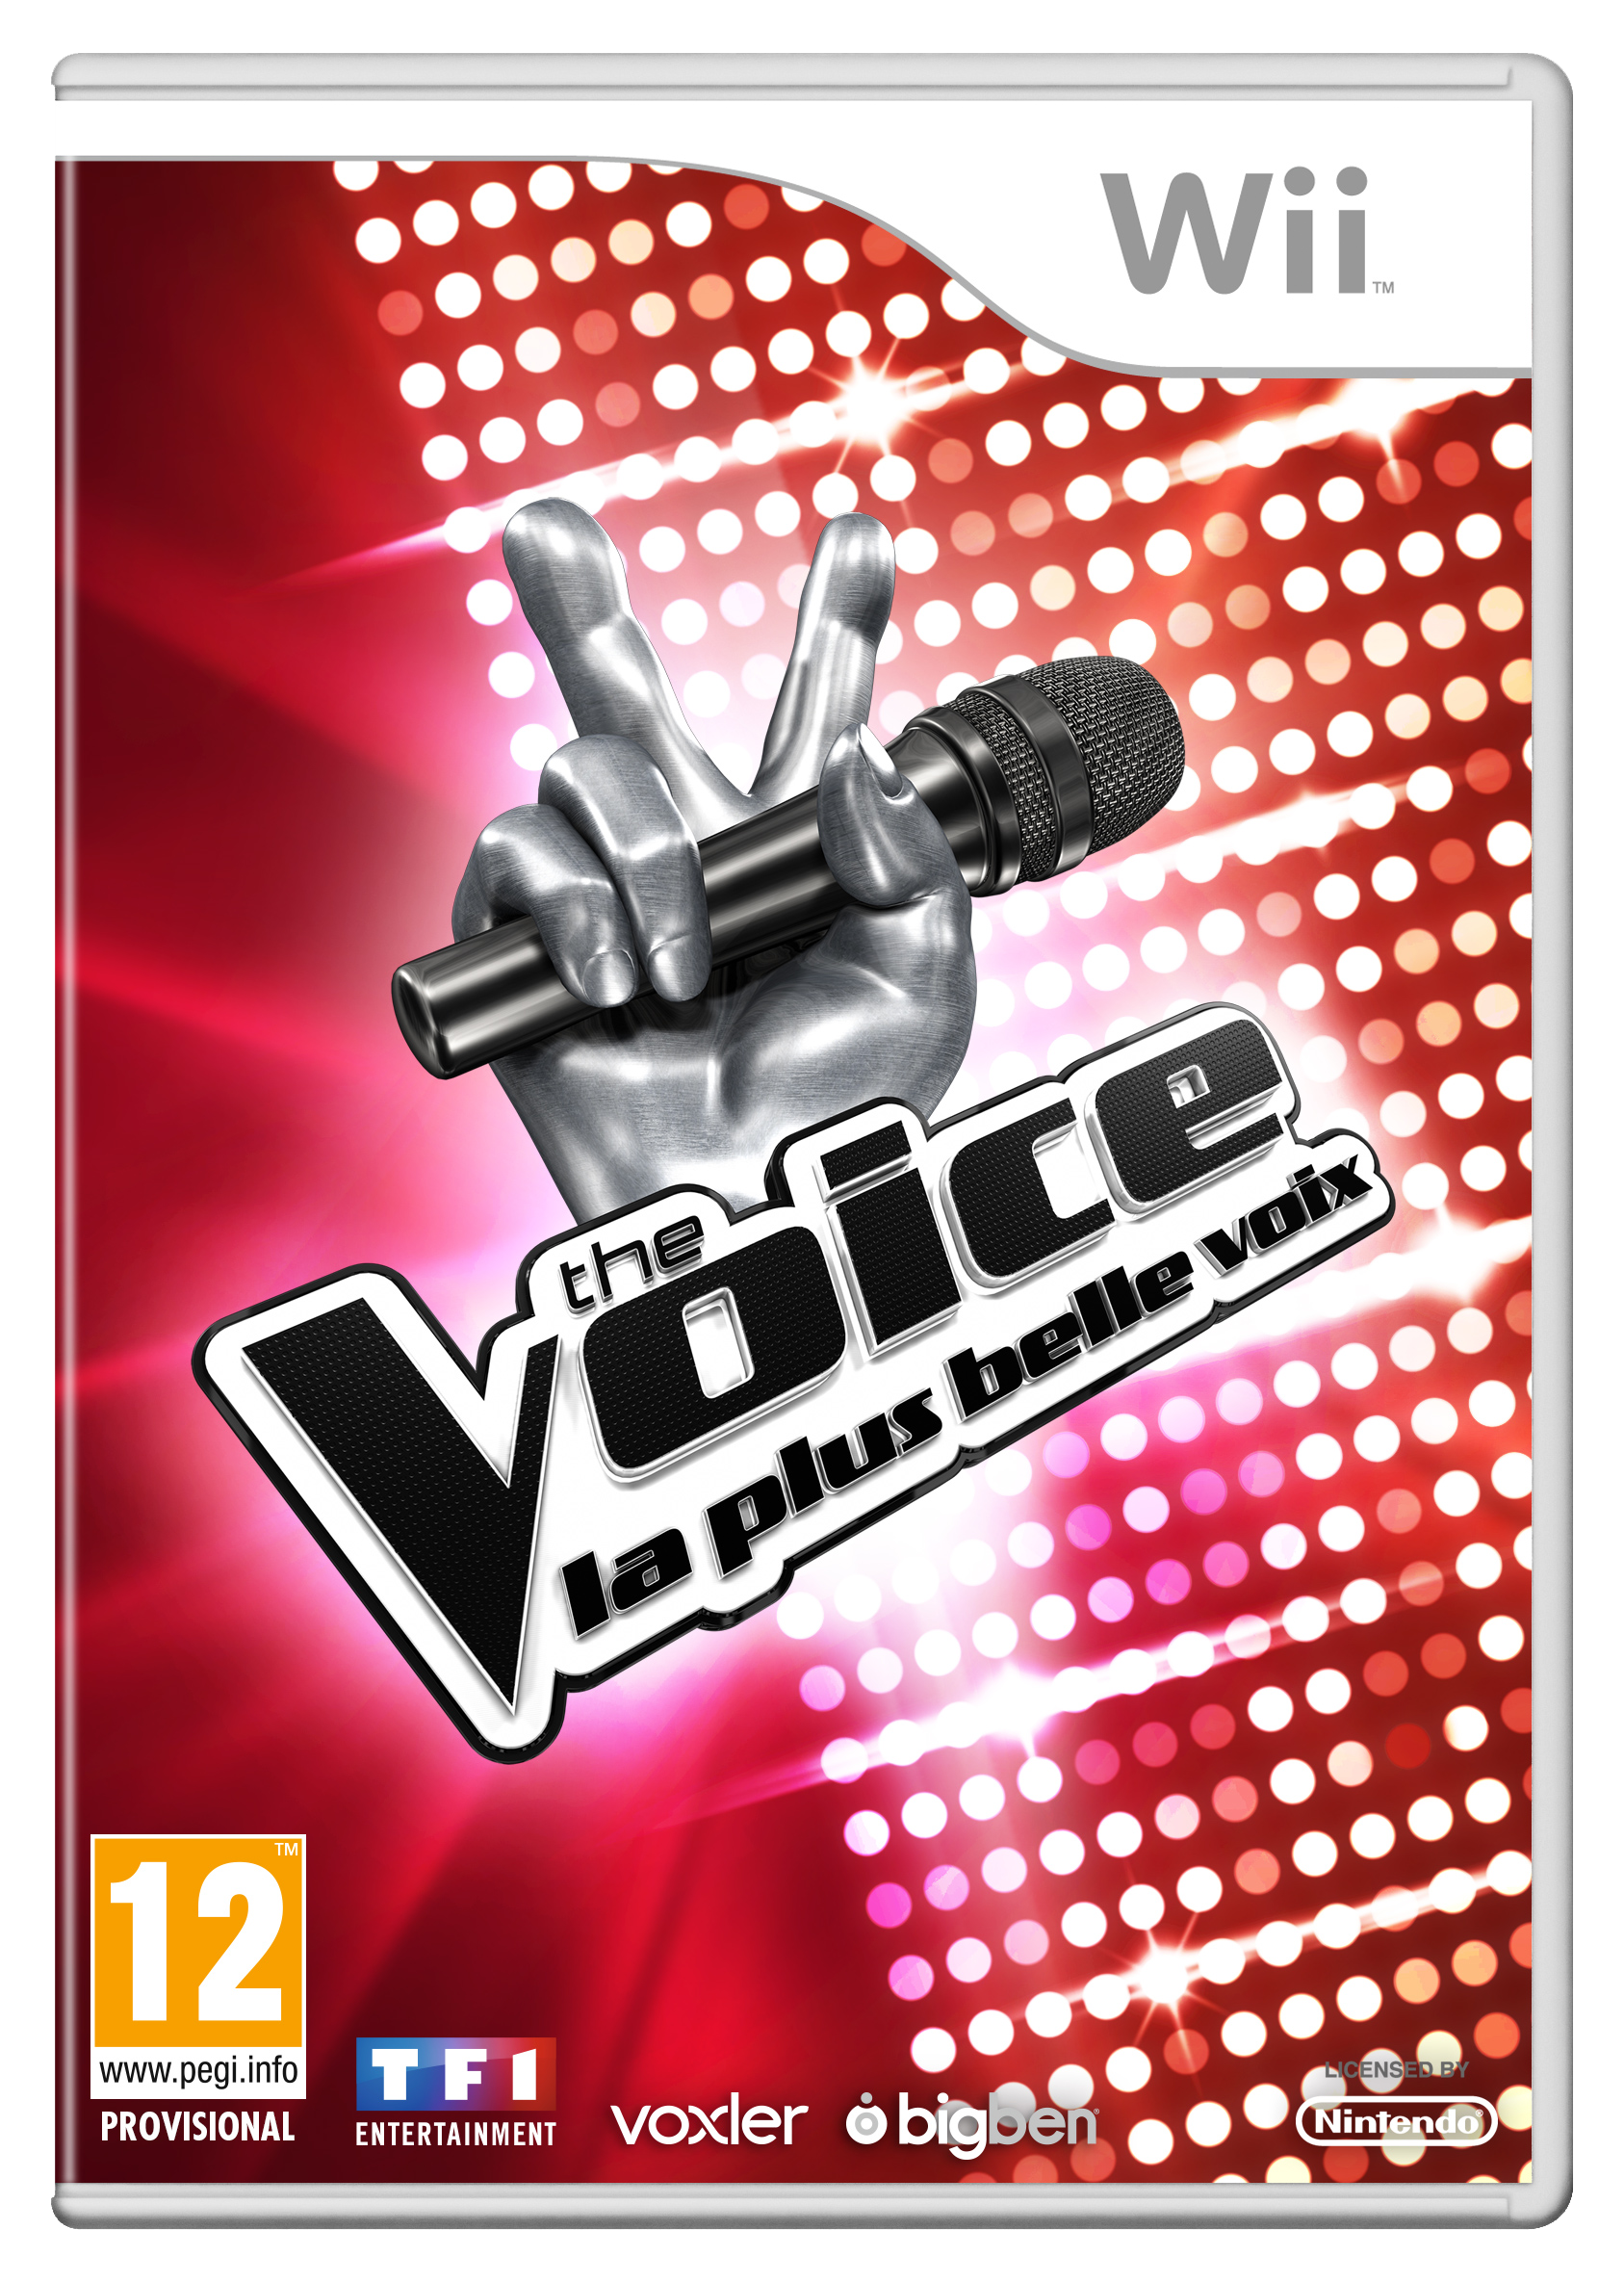 TheVoice Wii Jaquette 001